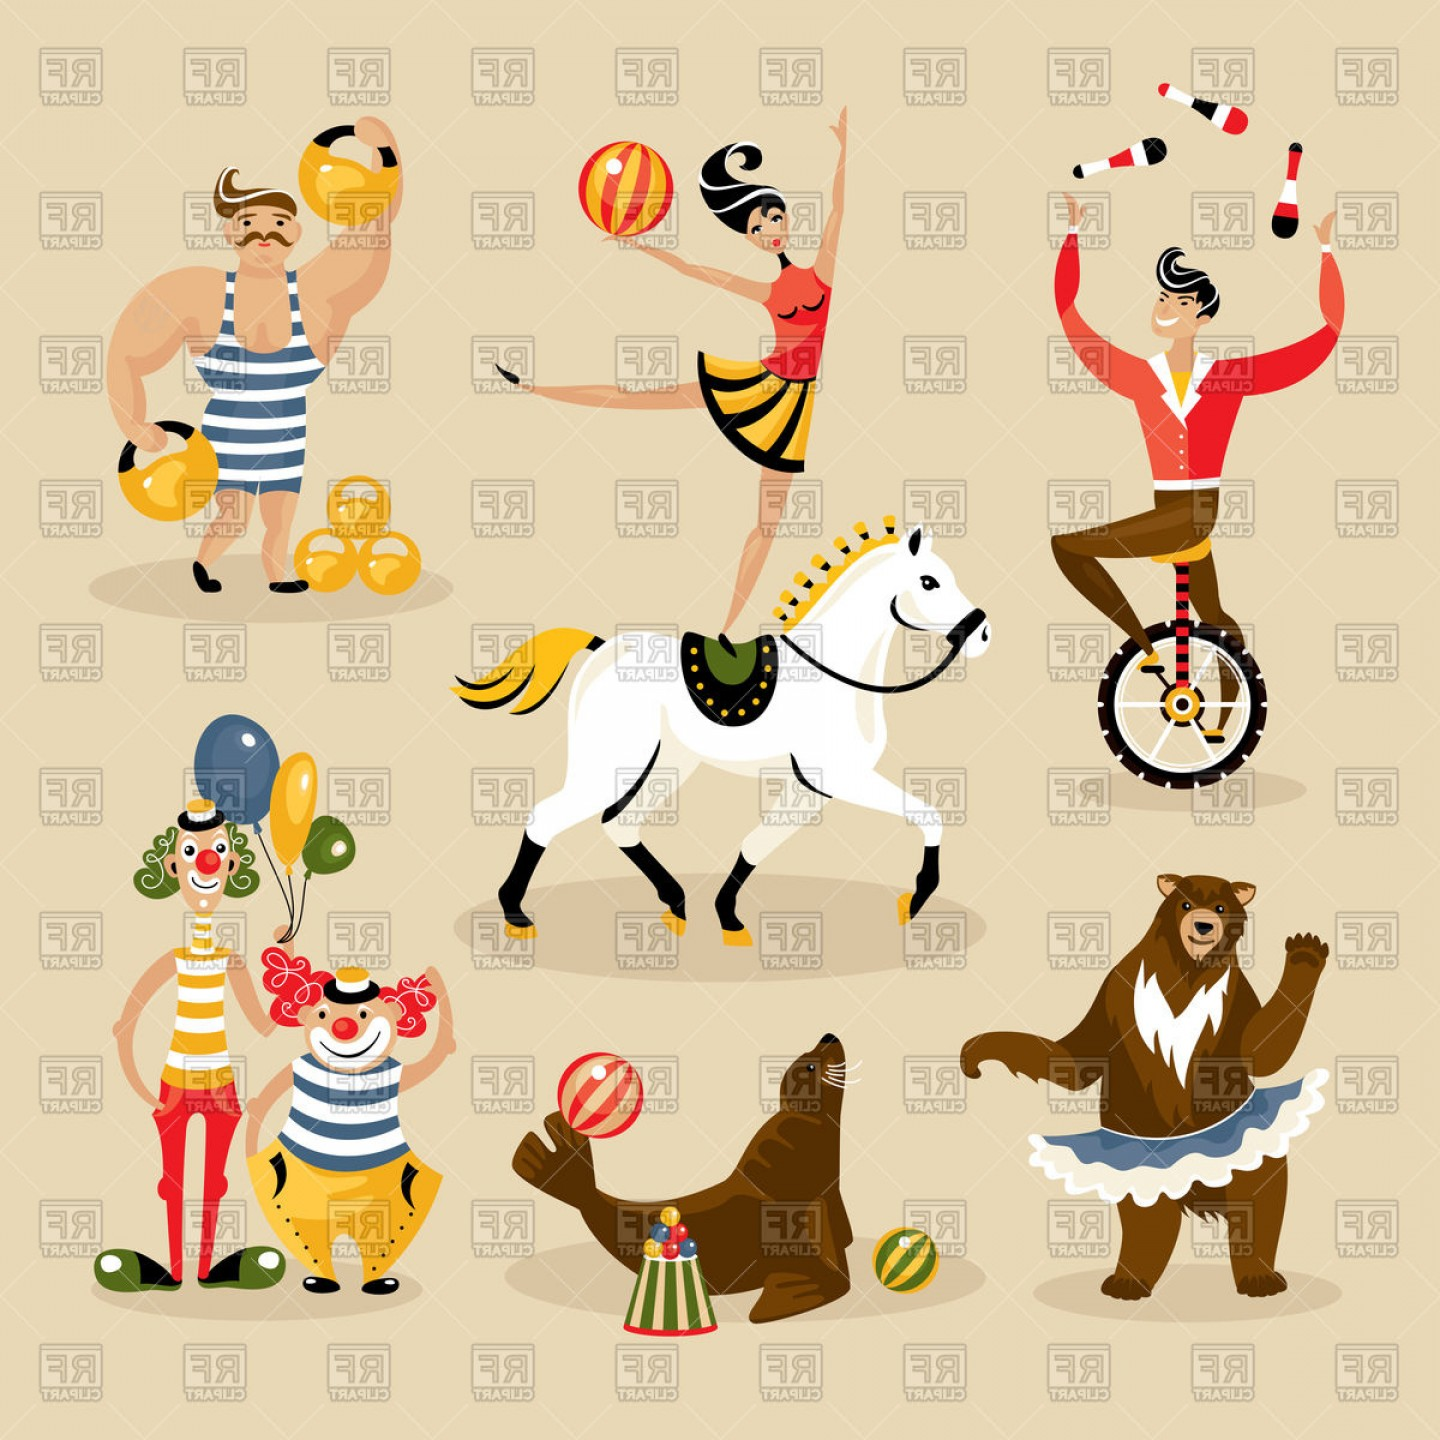 Circus Animals Vector Graphic: Set Of Circus Characters And Animals Vector Clipart